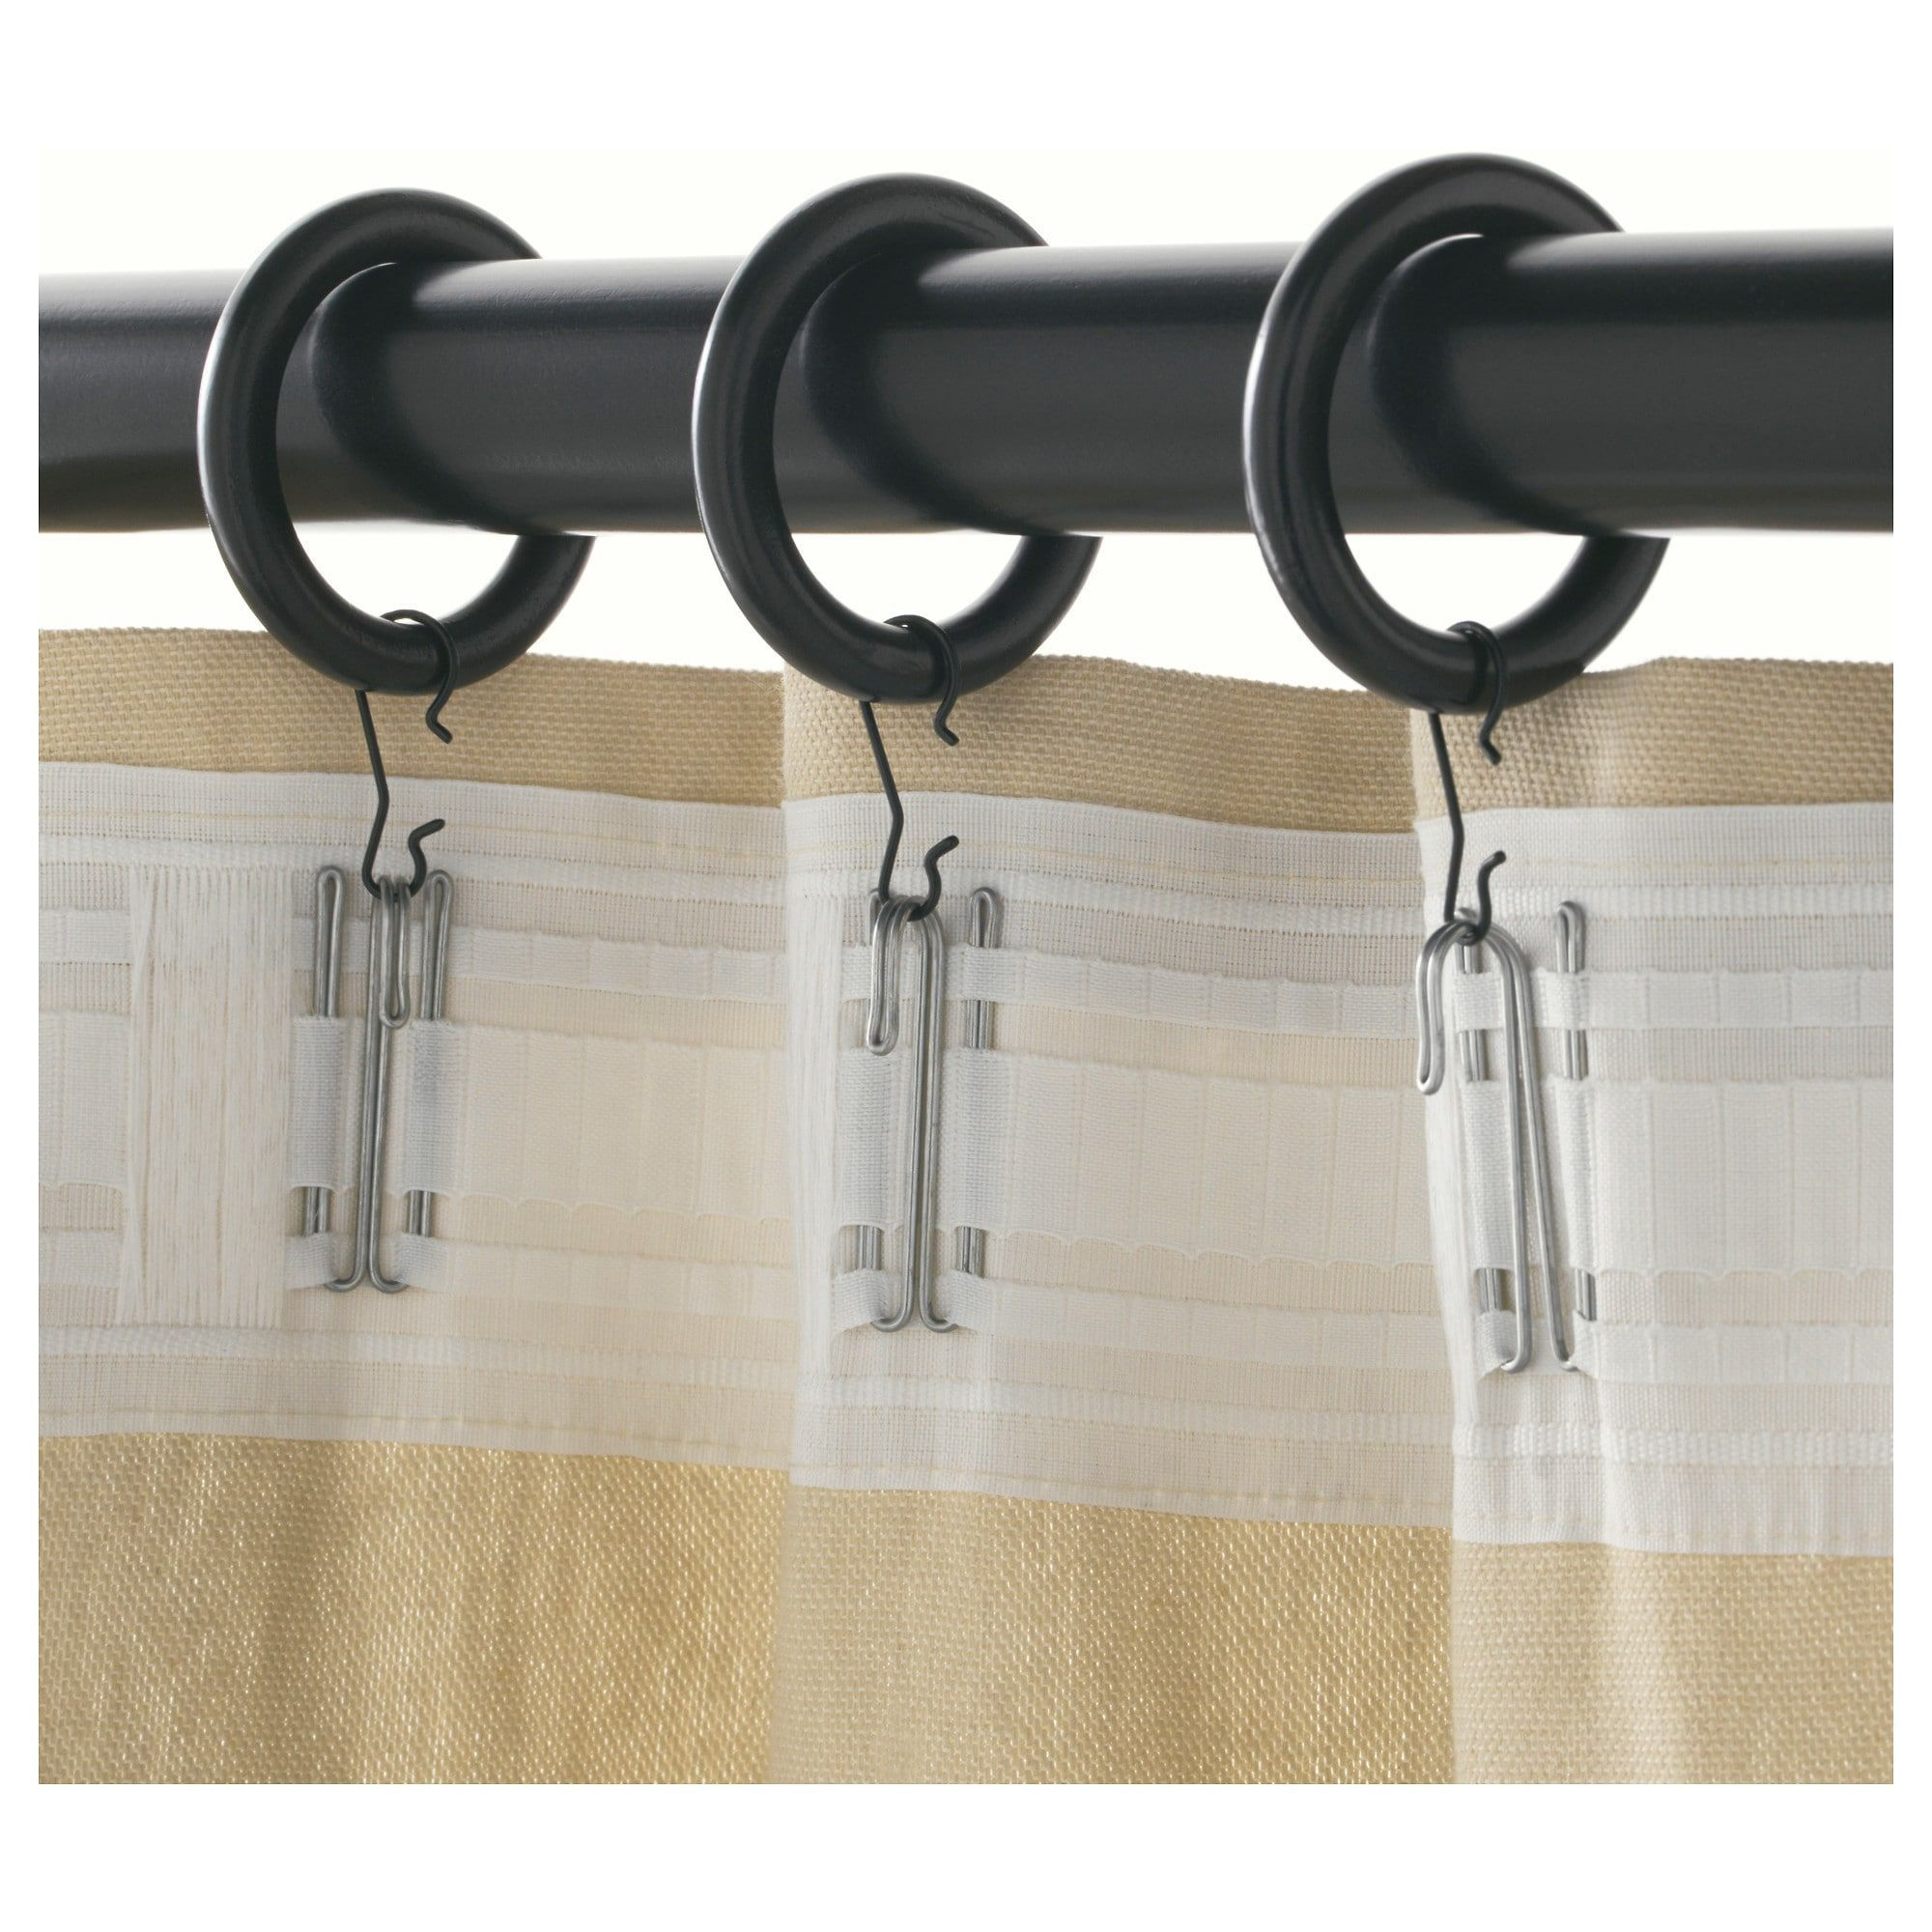 Ikea Portion Curtain Ring With Clip And Hook Black Stained Or Use Cheap Shower Curtain Rings Curtains With Rings Curtain Rings With Clips Ikea Curtain Rods